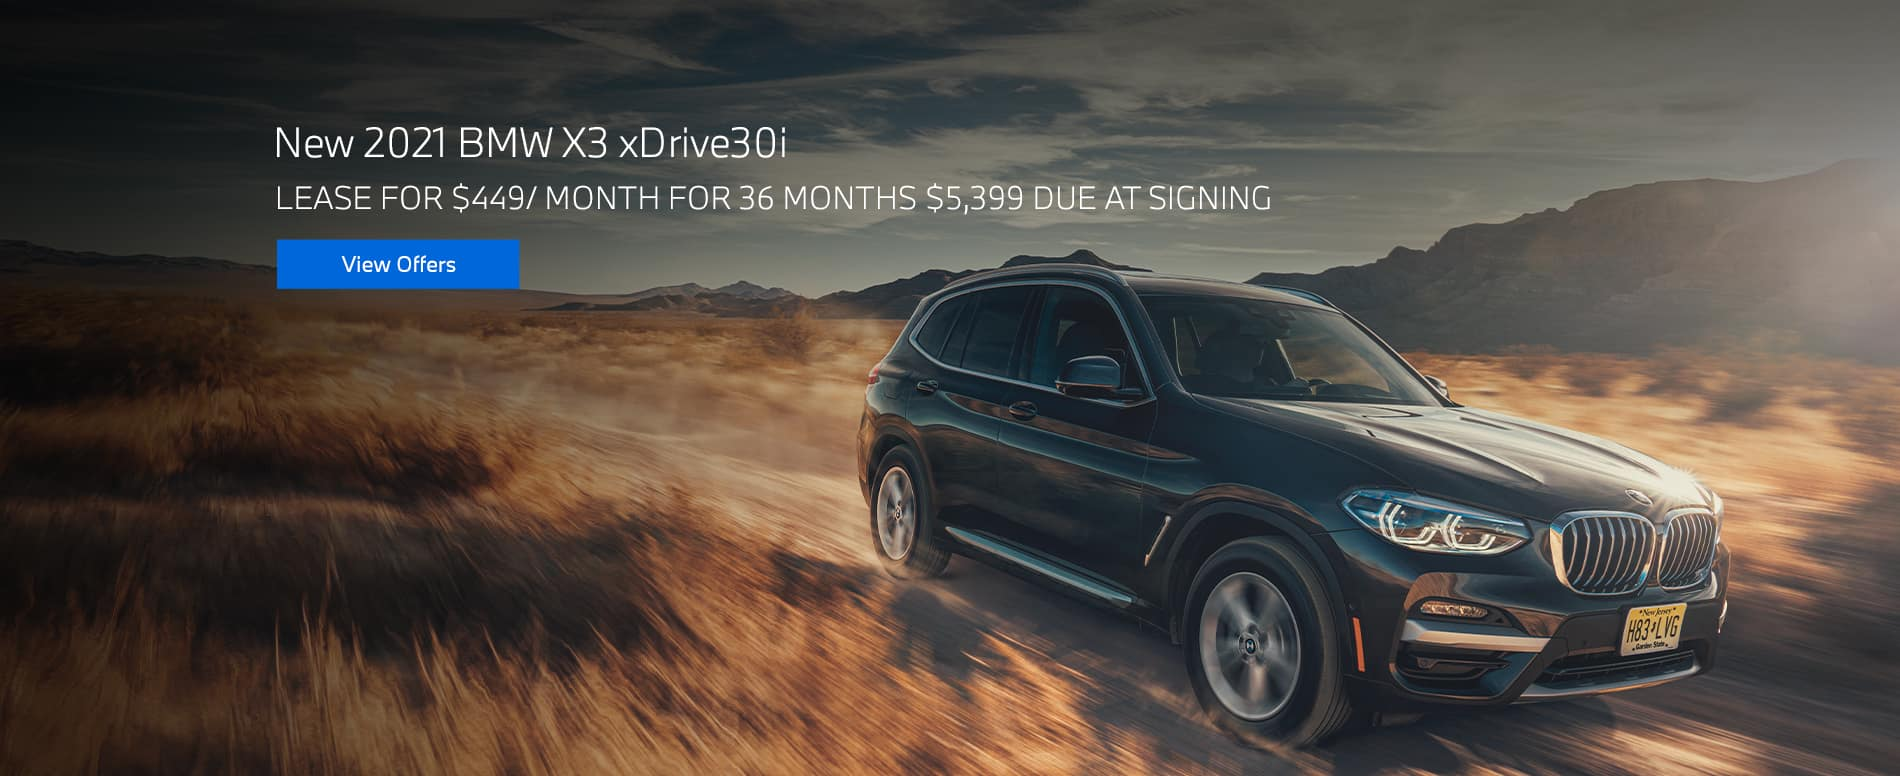 New 2021 BMW X3 xDrive30i$449/mo. for 36 months $5,399 due at signing